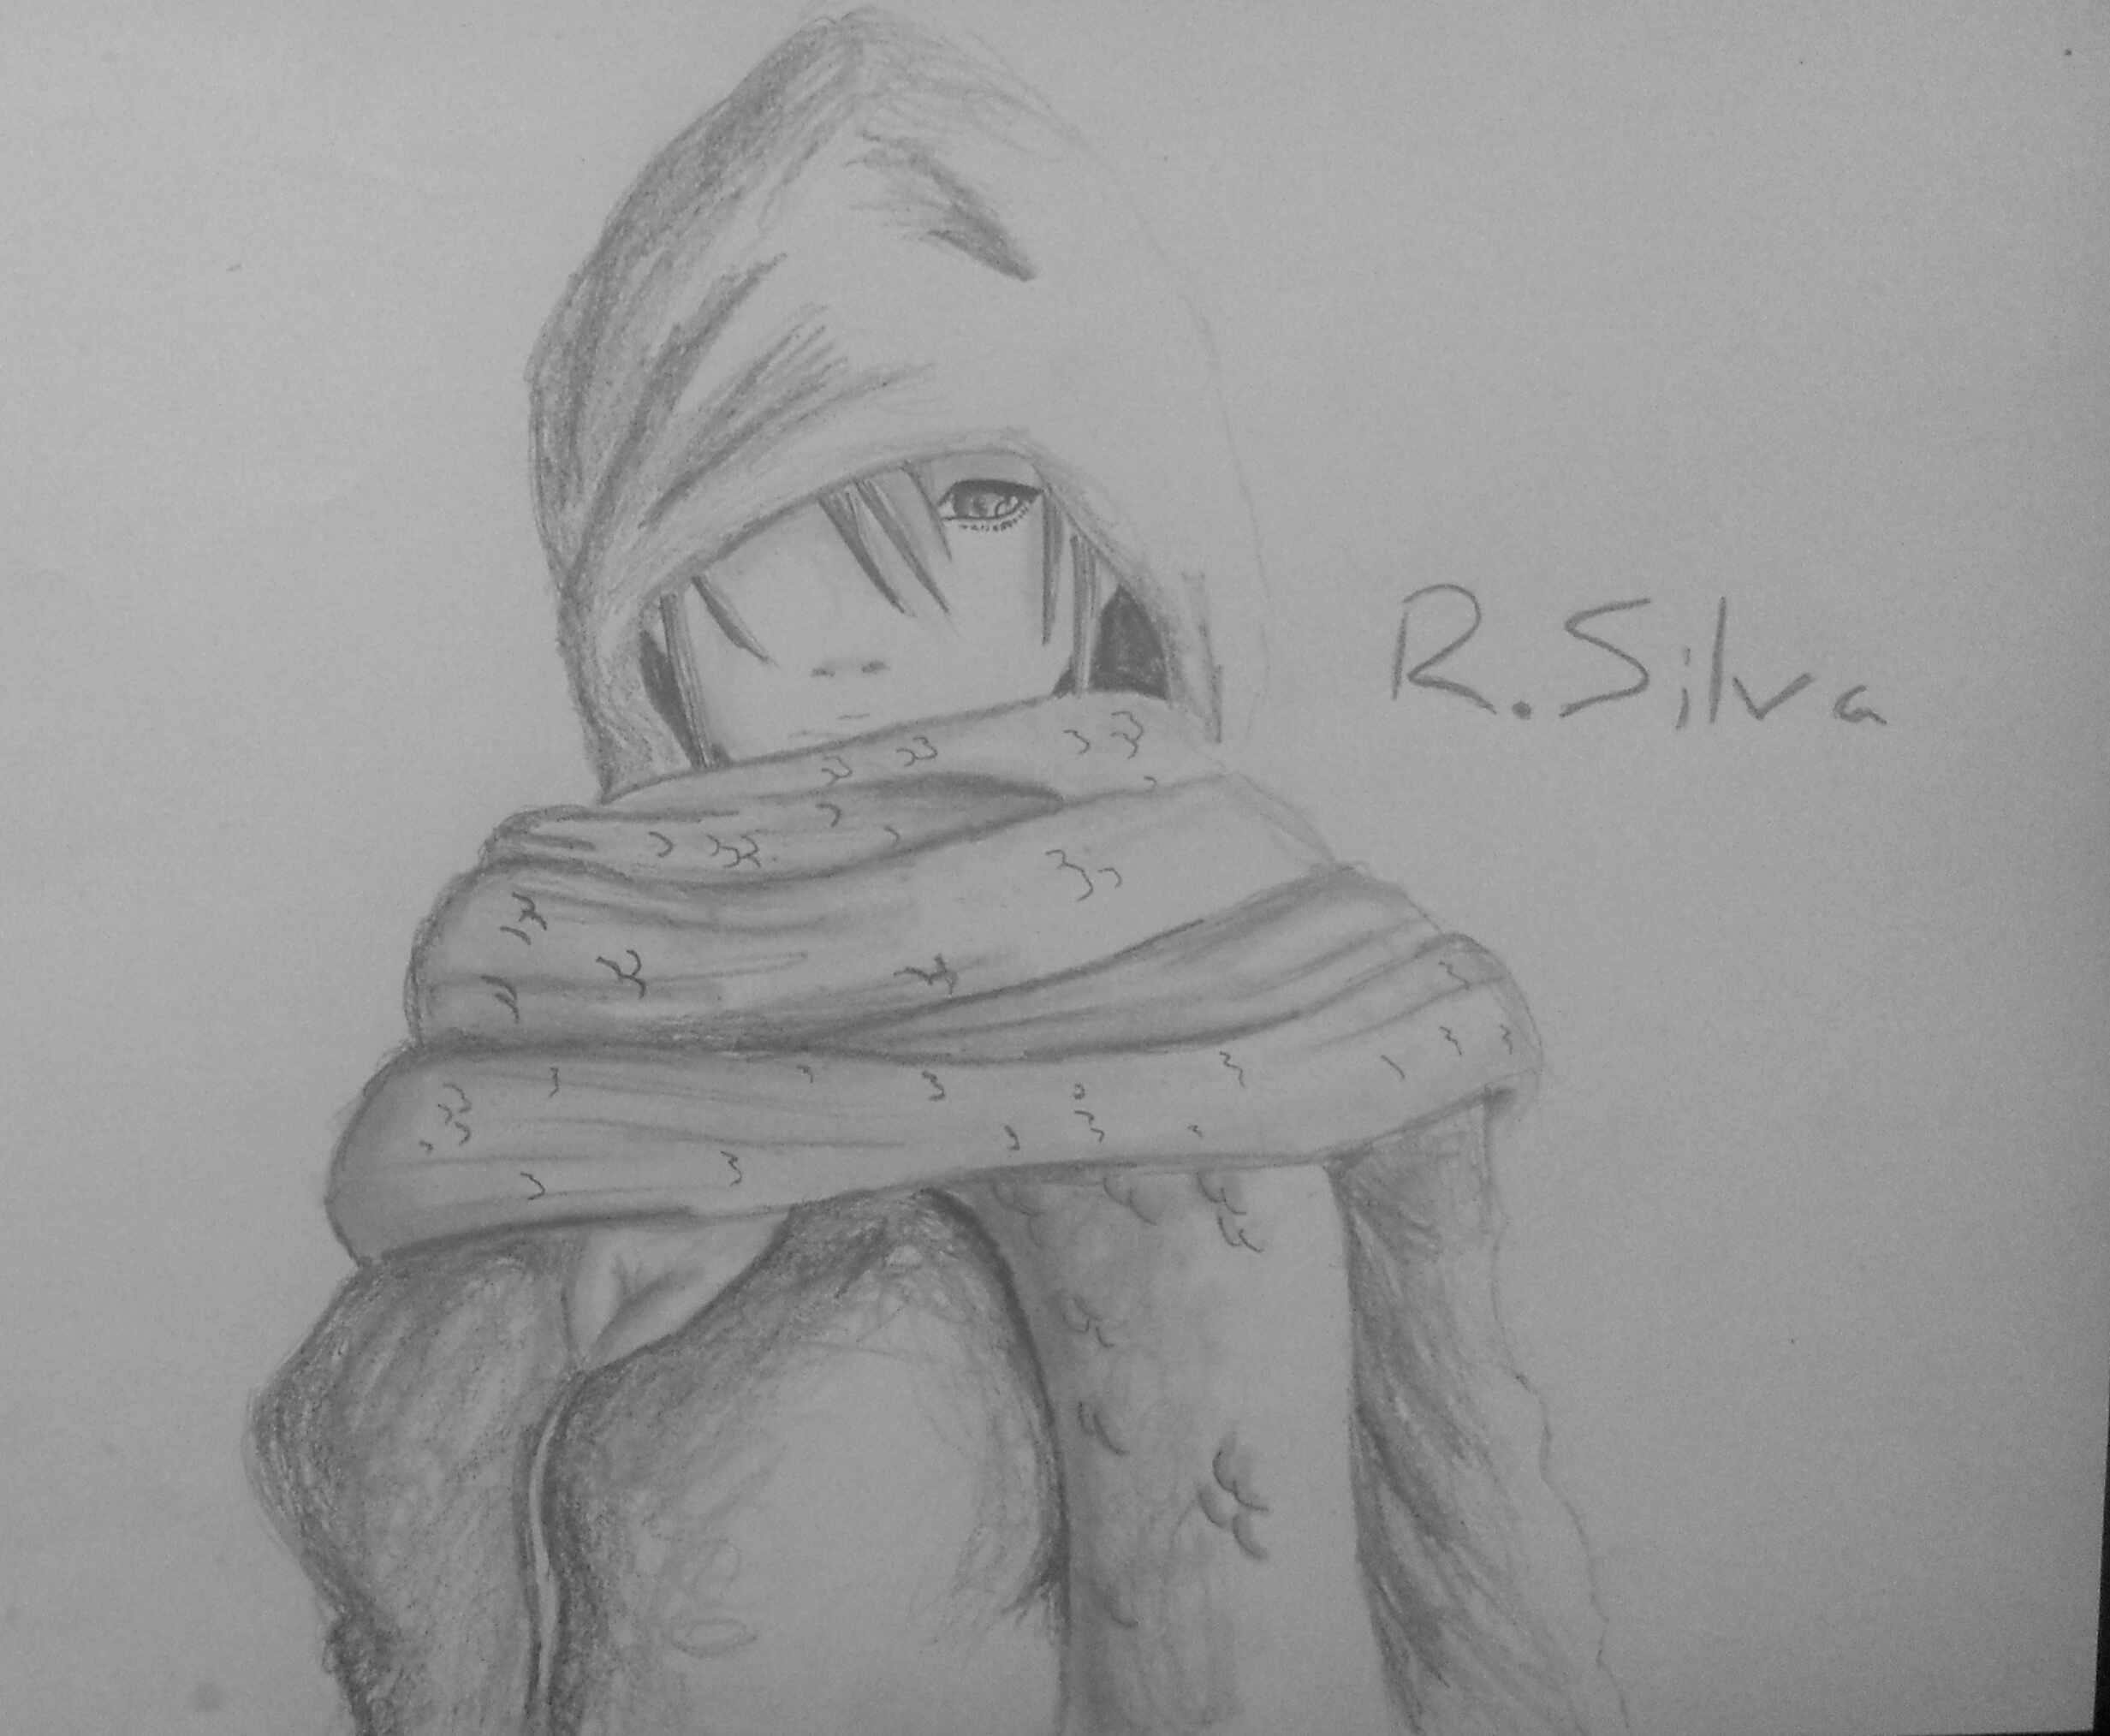 Anime girl with hoodie and scarf by rs1lva on deviantart